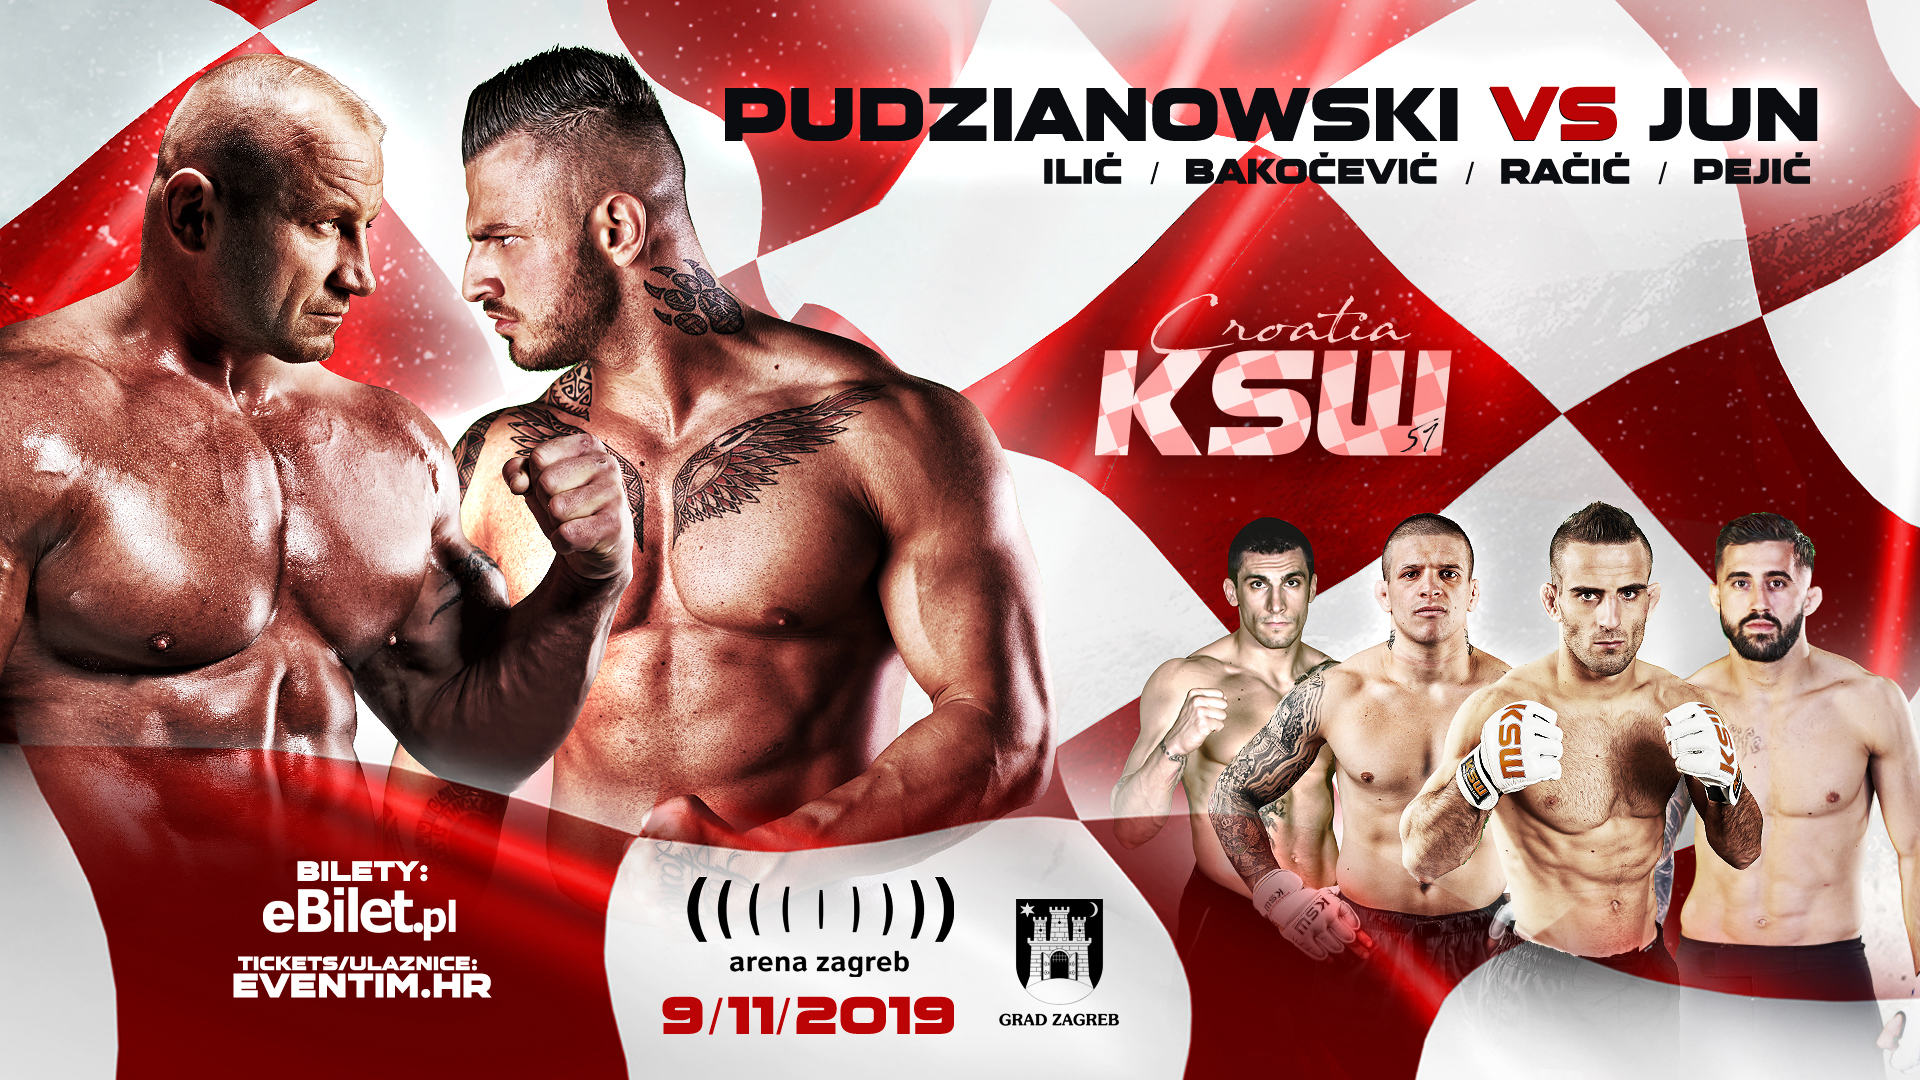 KSW comes to Croatia for the very first time -